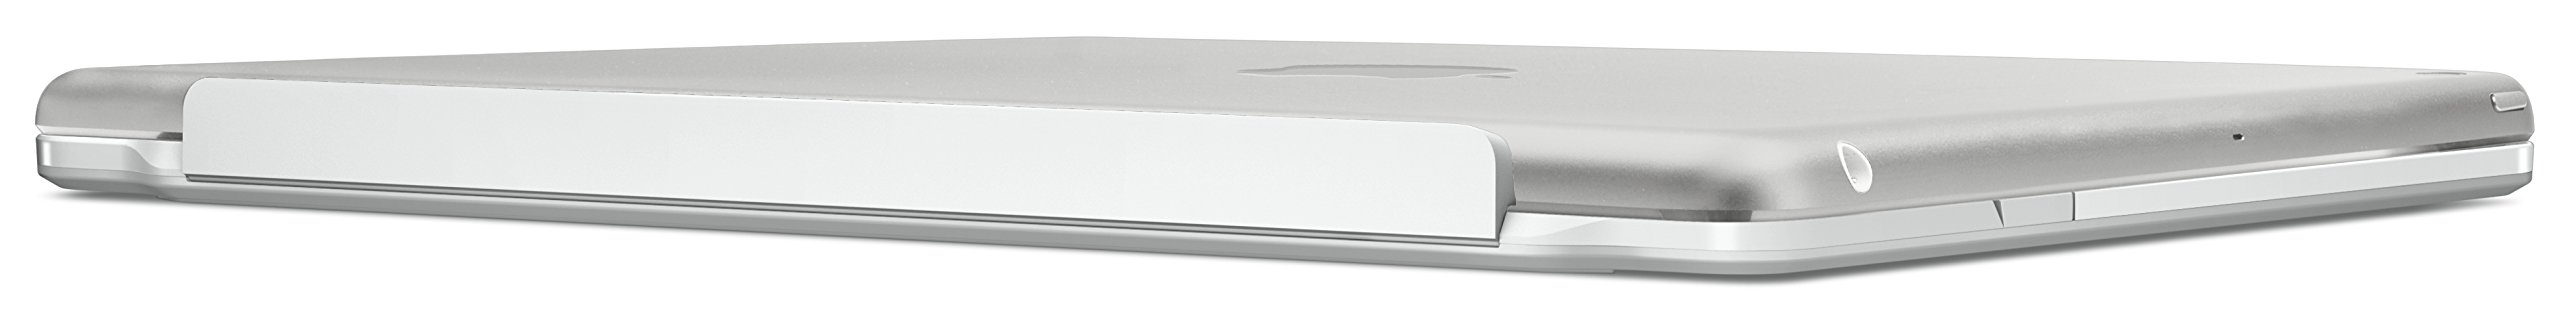 Logitech Ultrathin Magnetic Clip-On Keyboard Cover for iPad Air, Silver by Logitech (Image #4)